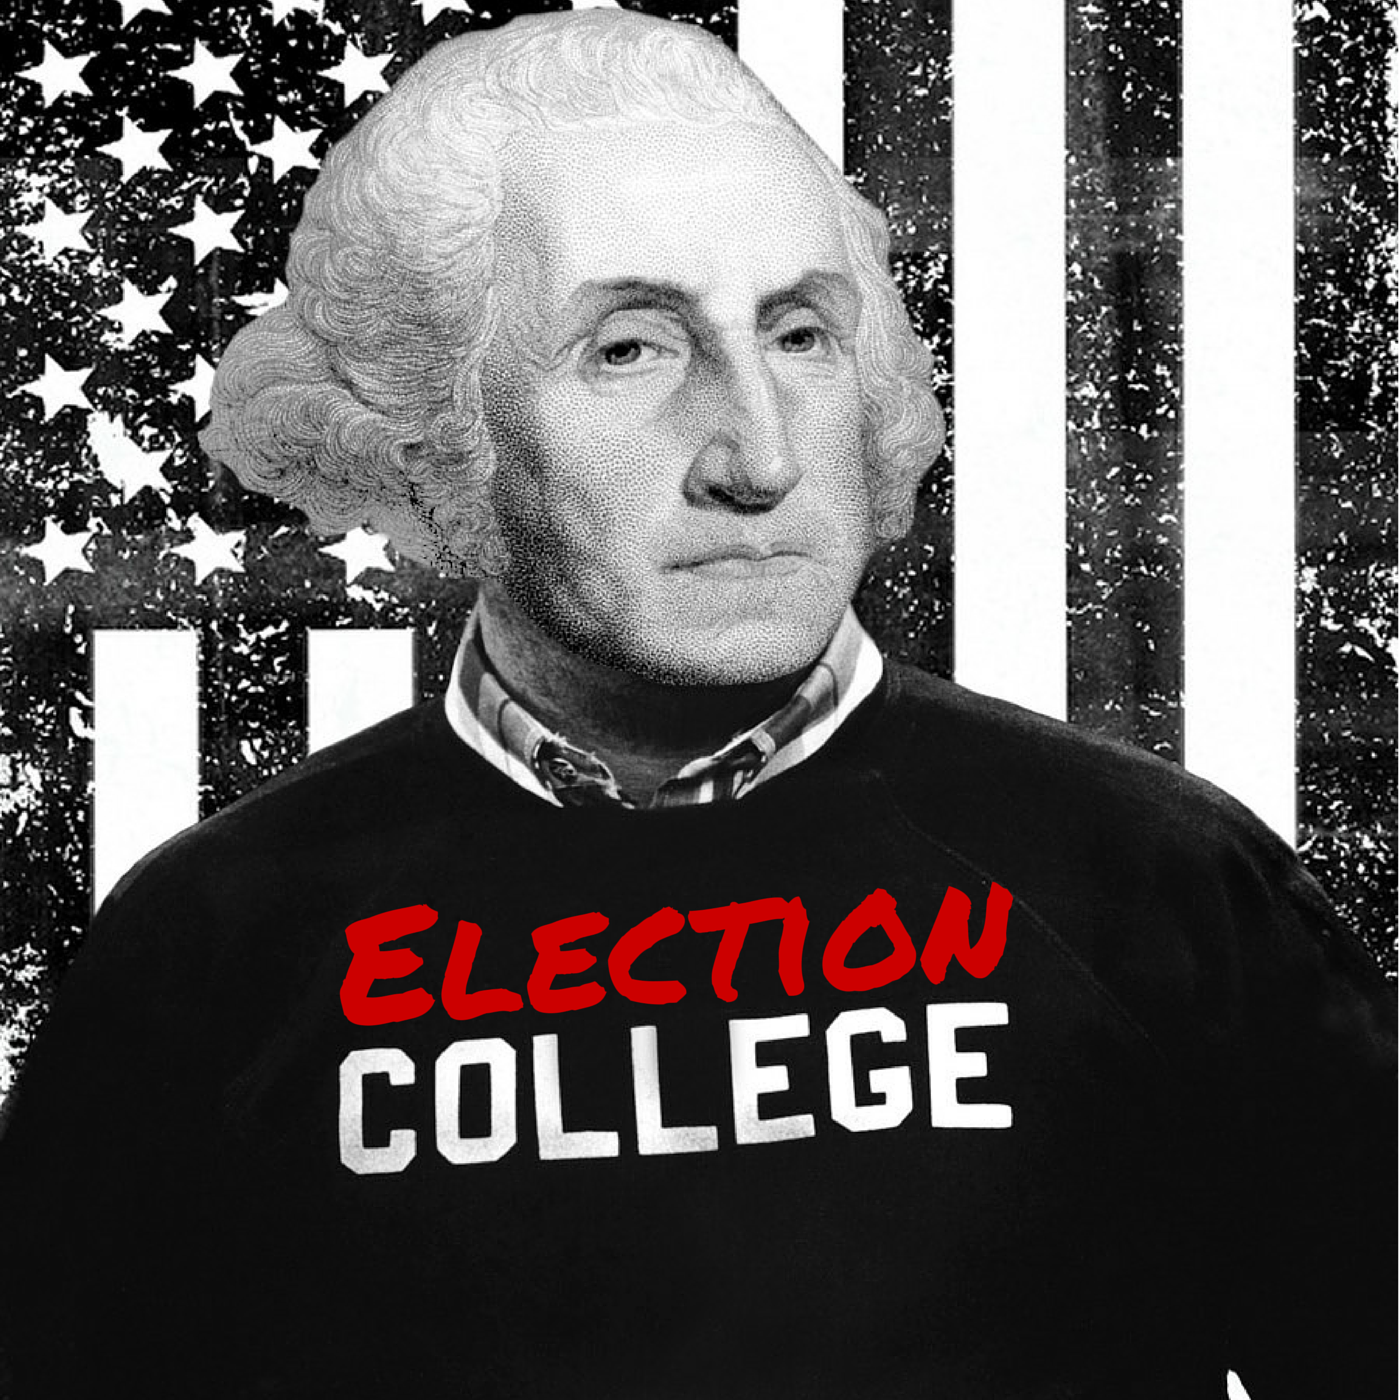 Ulysses S. Grant - Part 1 | Episode #244 | Election College: United States Presidential Election History